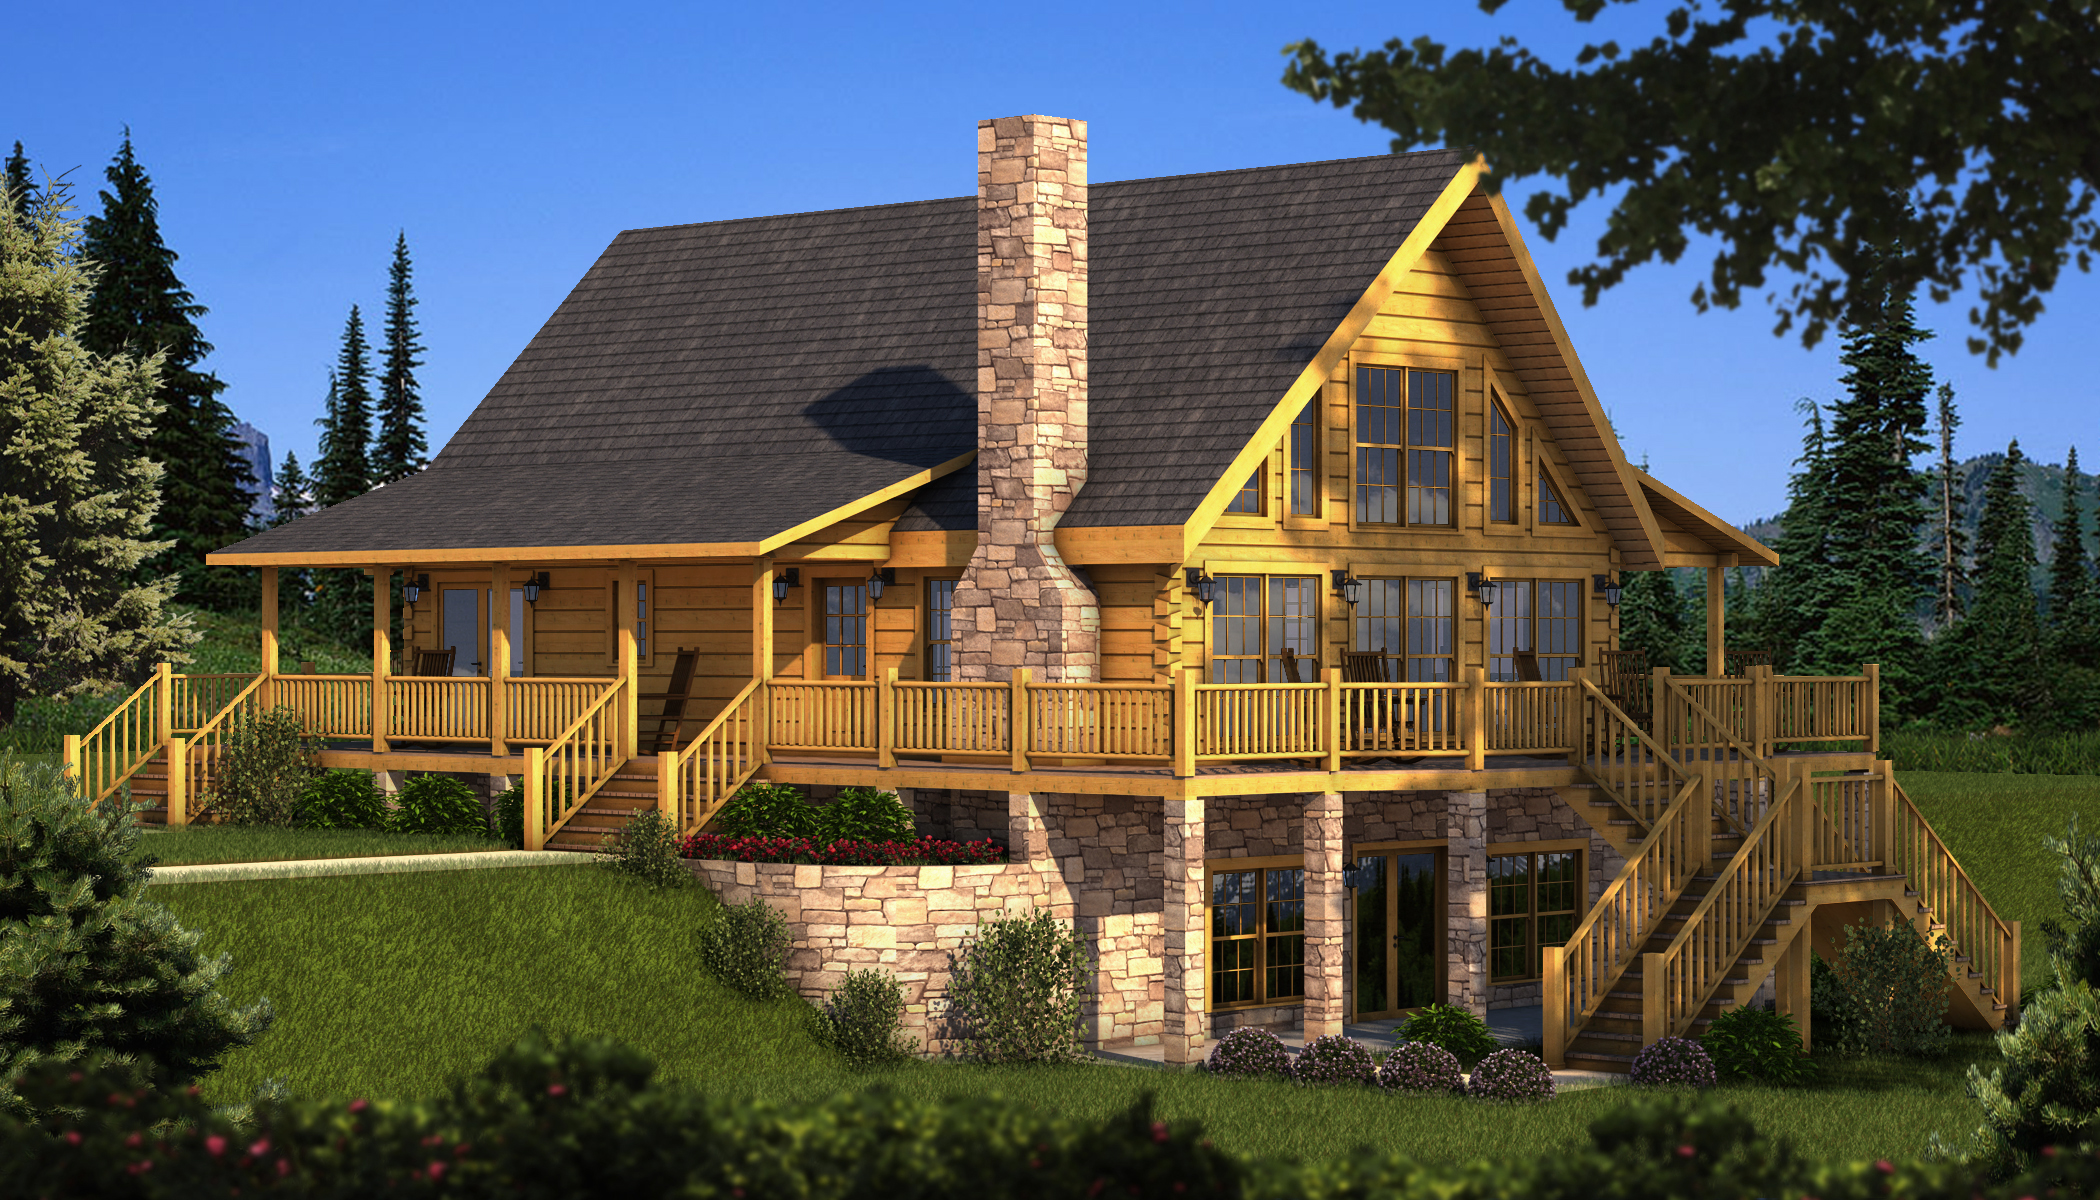 awesome exterior design of Southland Log Homes in double tier design with natural stone chimney and glass window plus wooden railing ideas